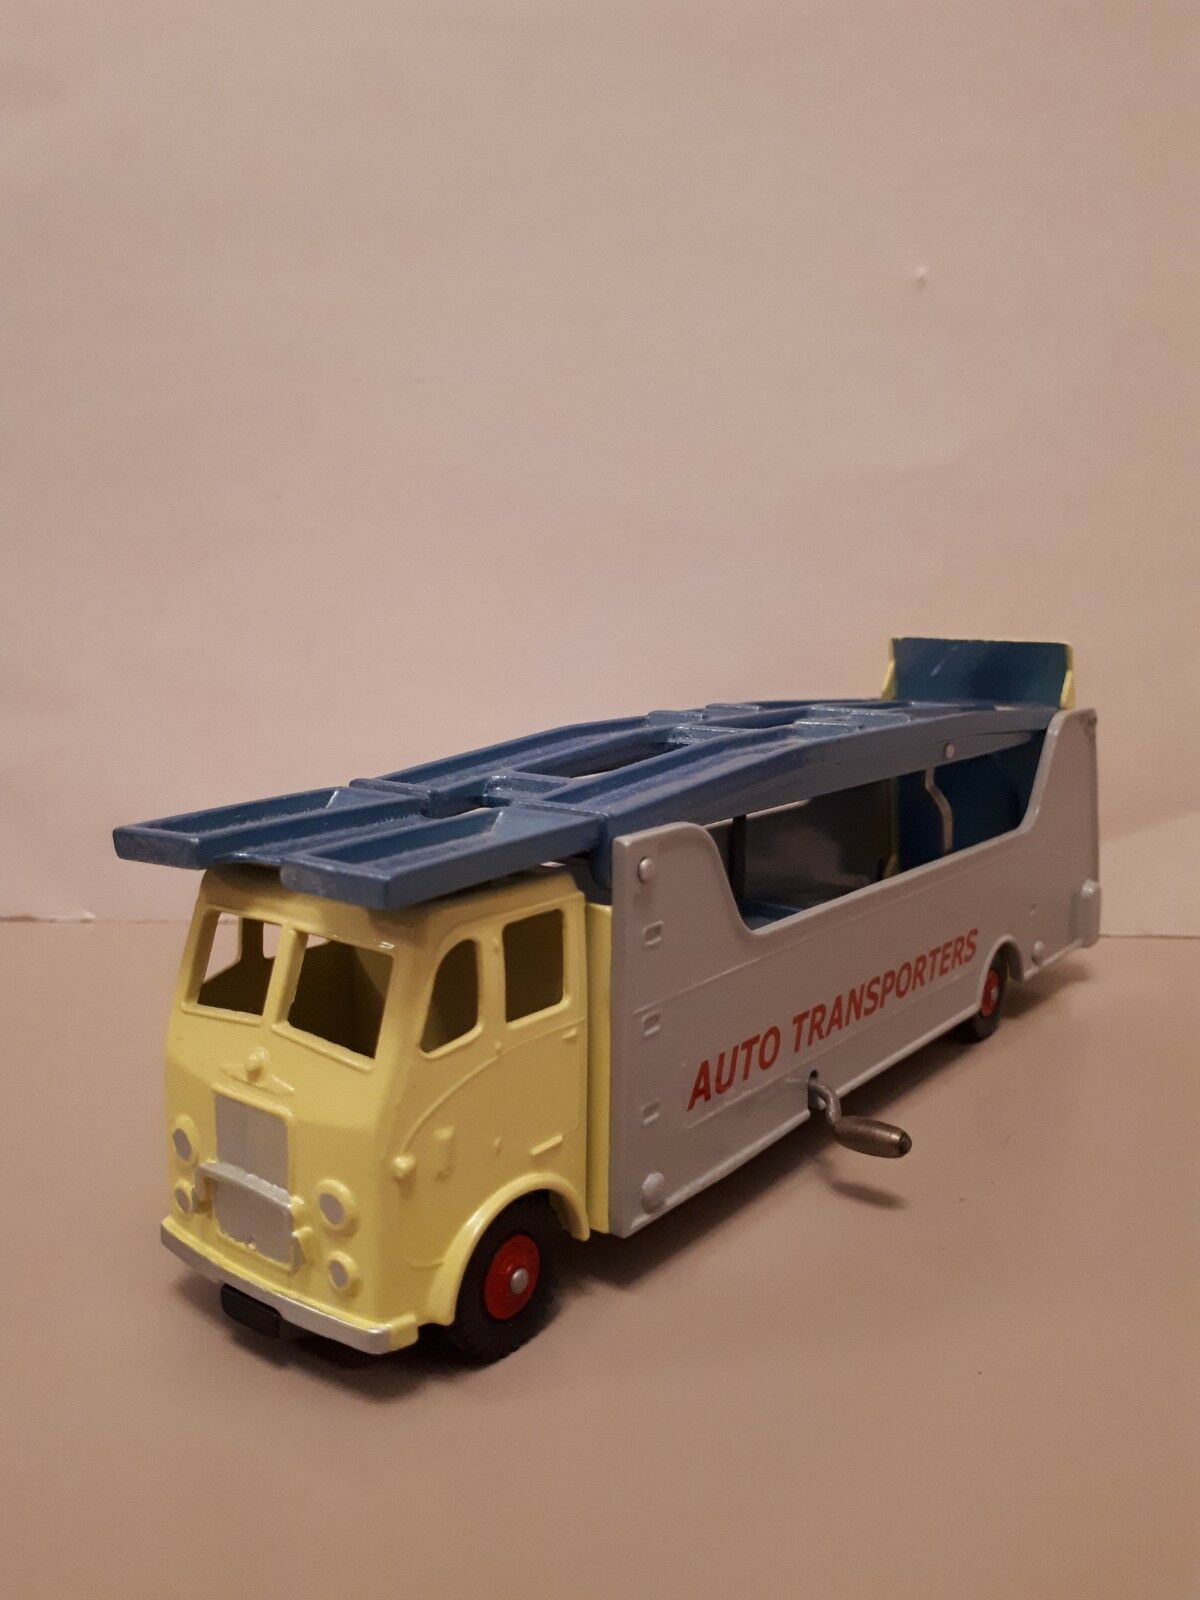 EXTREMELY RARE DINKY SUPERTOYS MODEL.CODE 3. 984 989 AUTO TRANSPORTER . MINT.